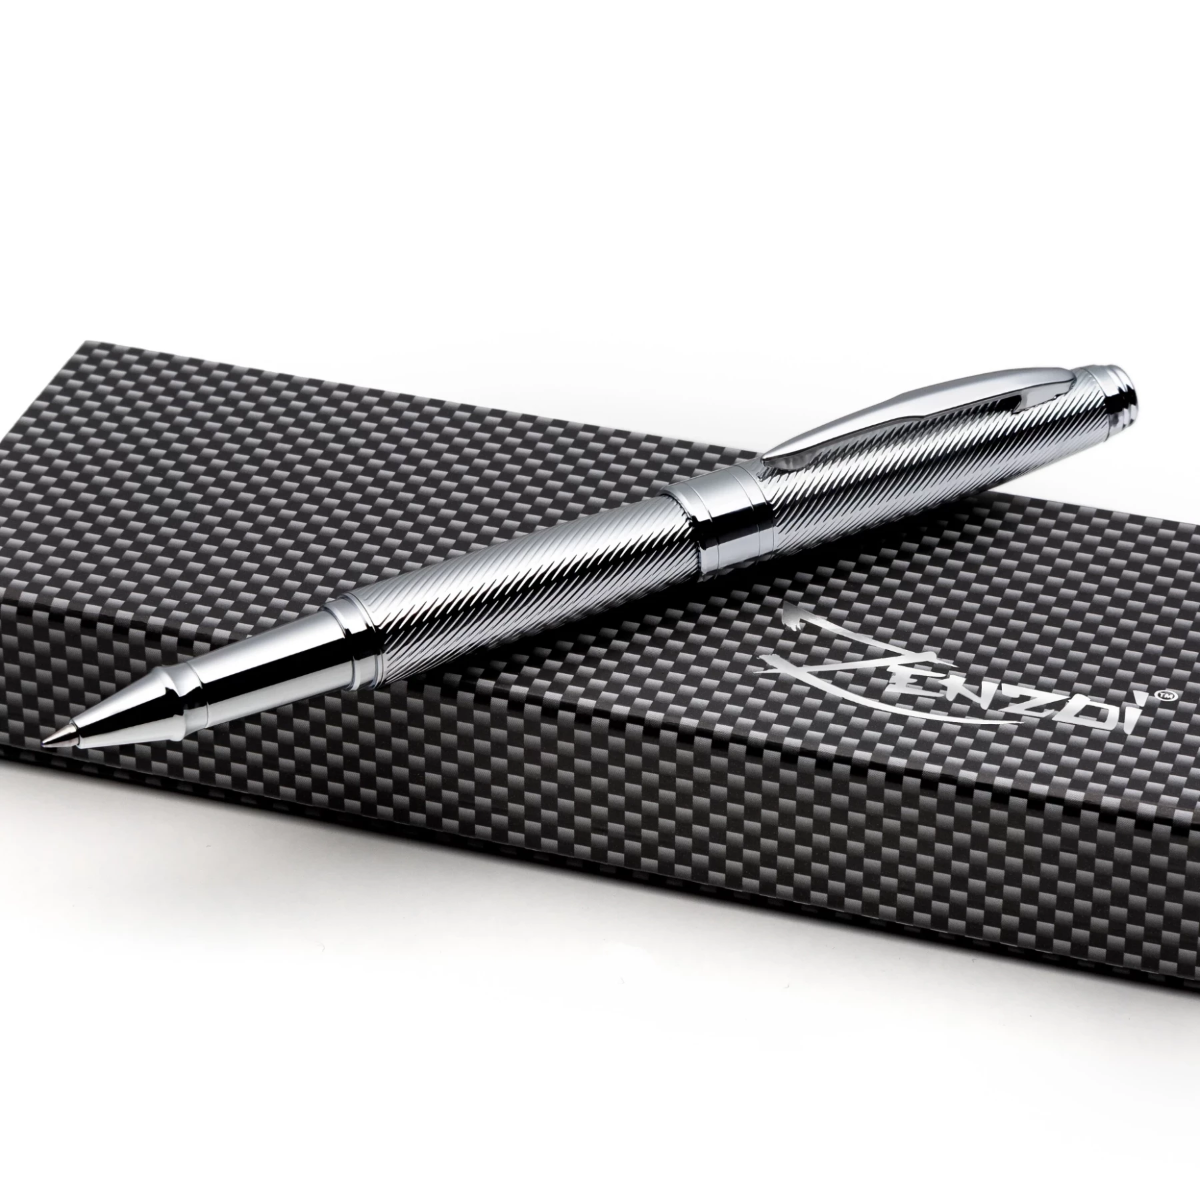 Chrome Rollerball Pen Set with Schneider Ink Refill and Gift Box